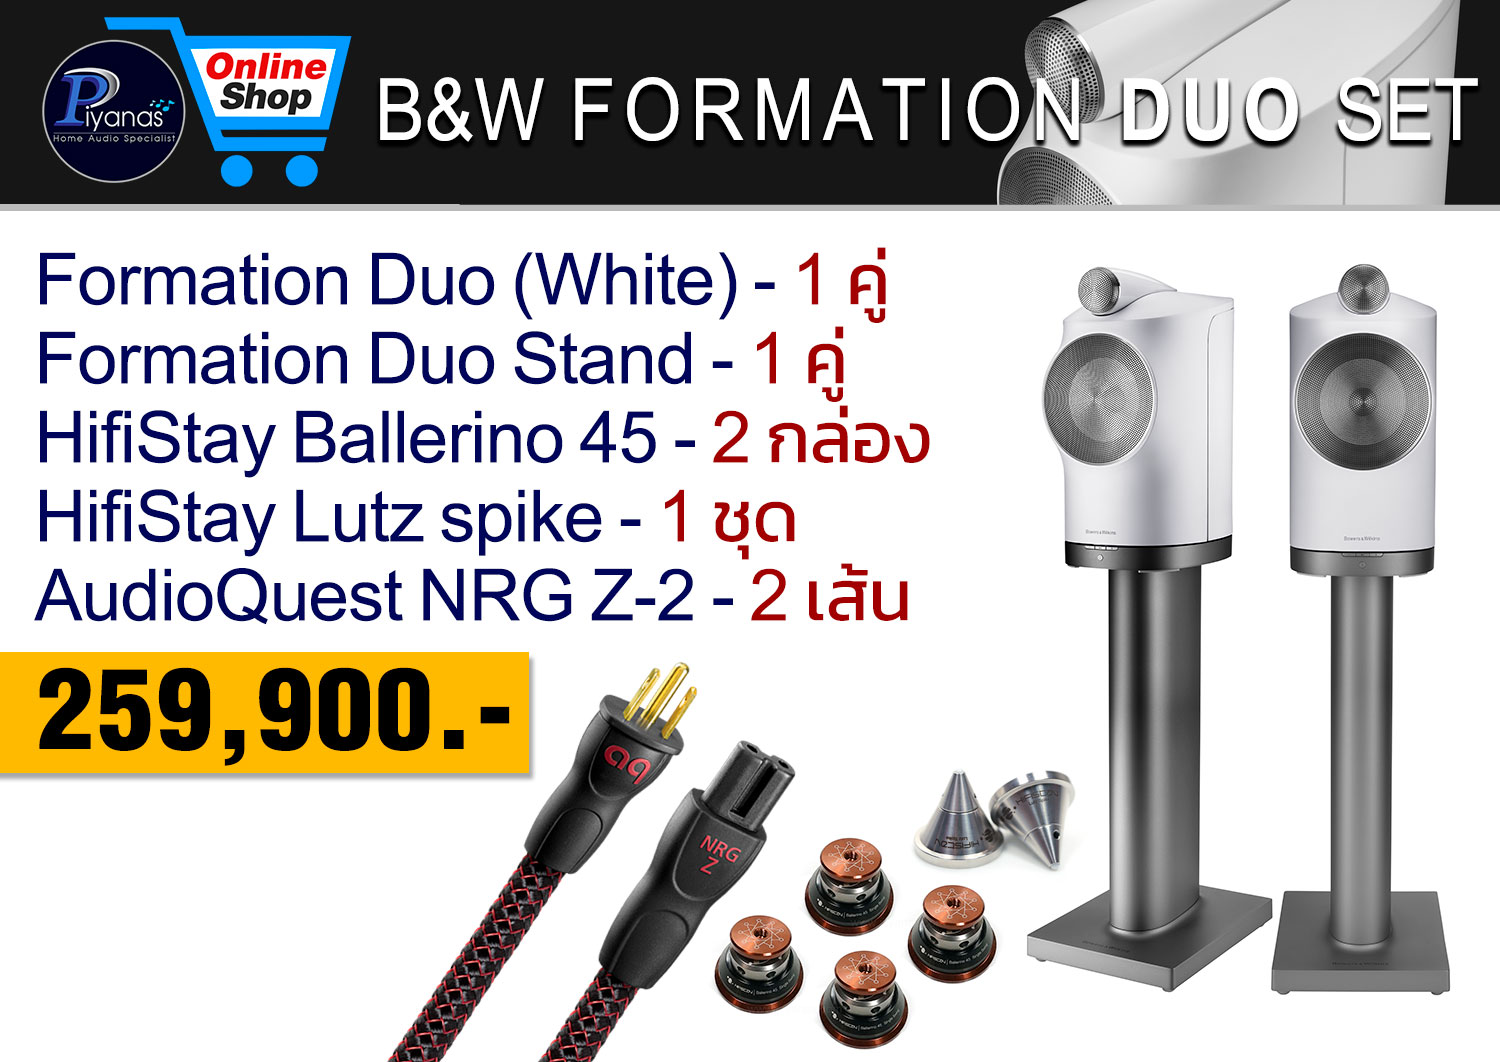 Formation DUO Set (White)